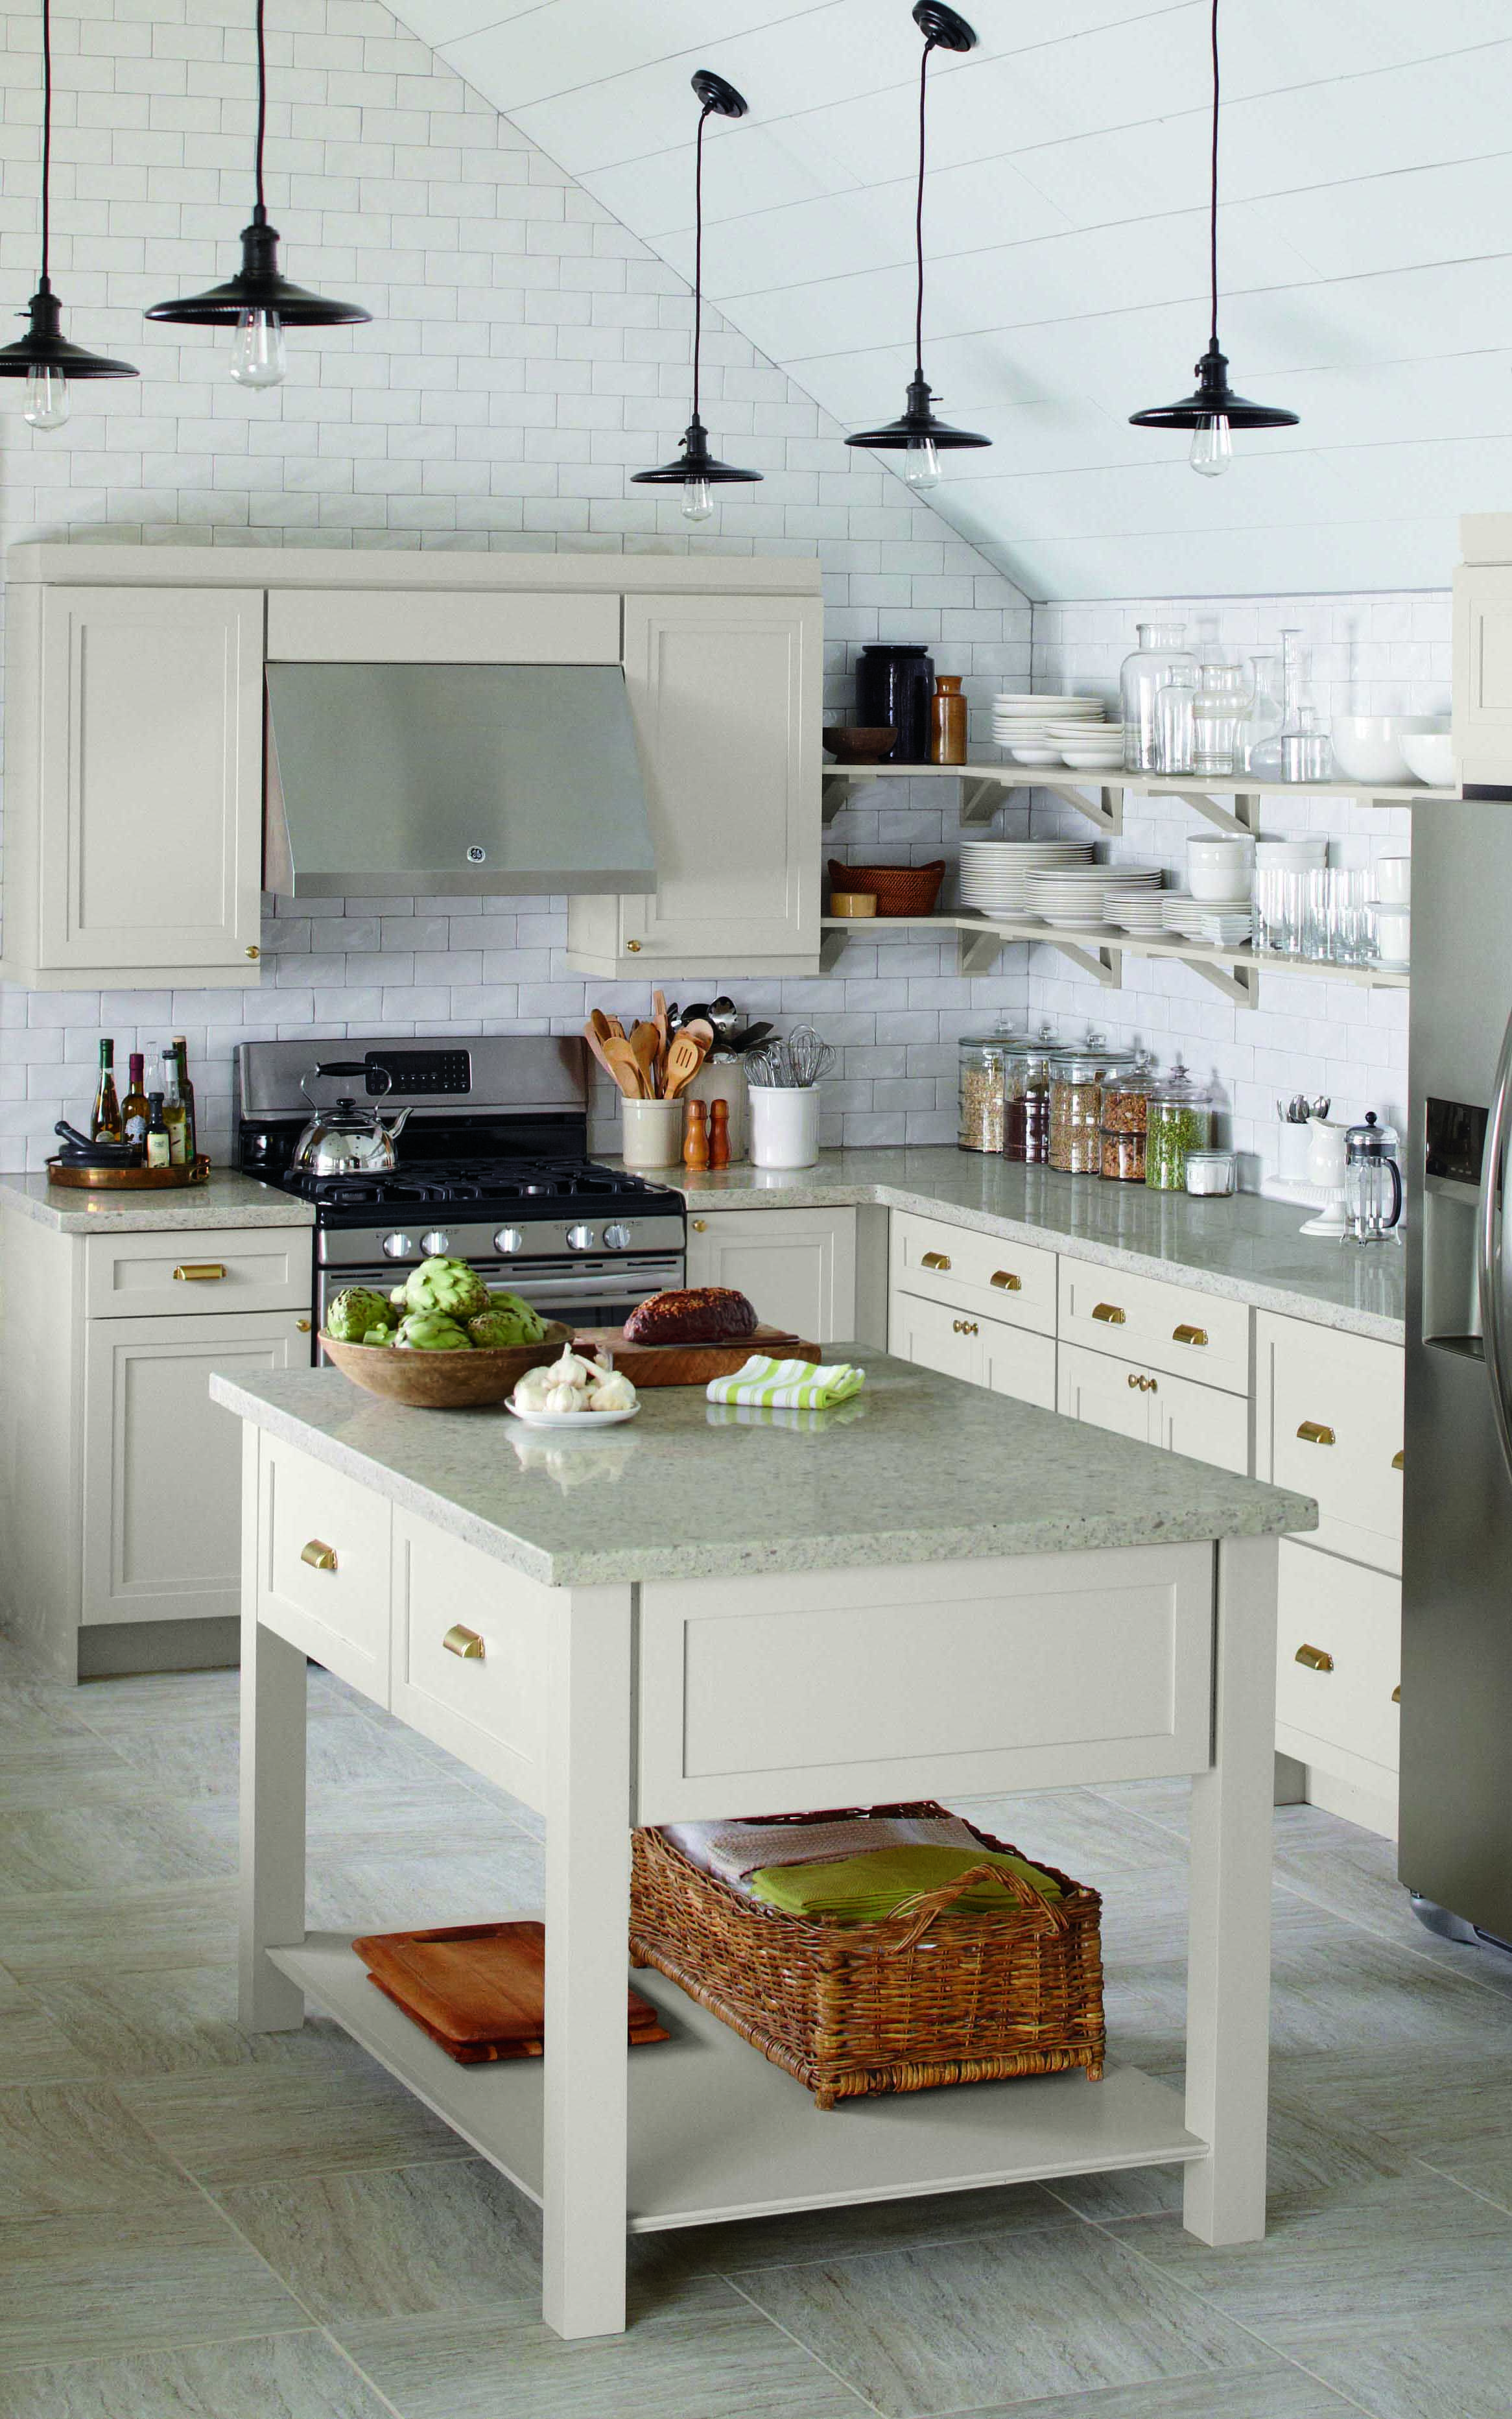 Planning A Kitchen Remodel This Year Check Out These Handy